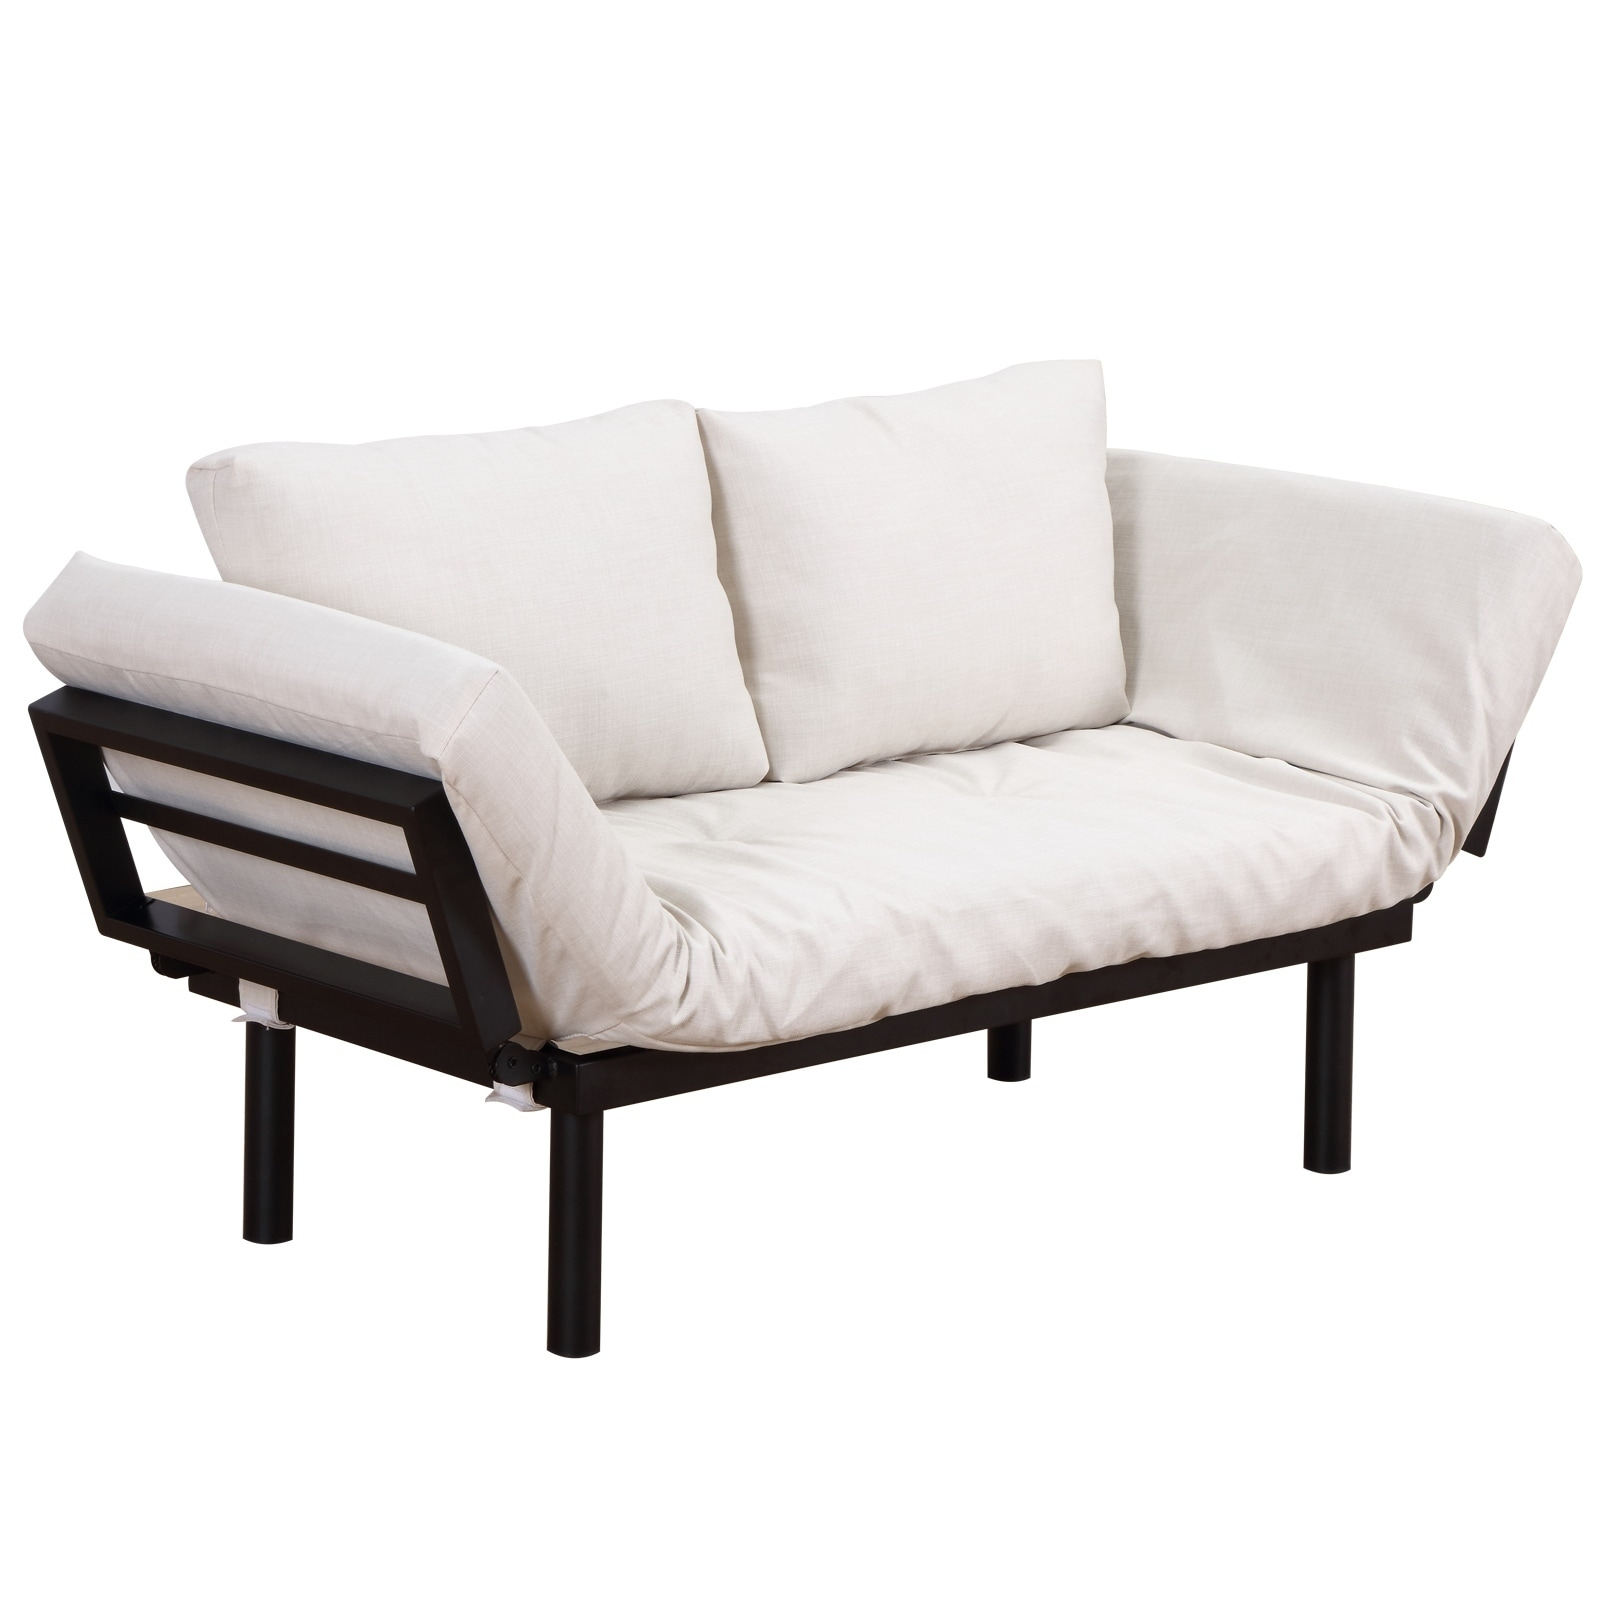 HomCom Single Person 3 Position Convertible Couch Chaise Lounger Sofa Bed -  Black / Cream White